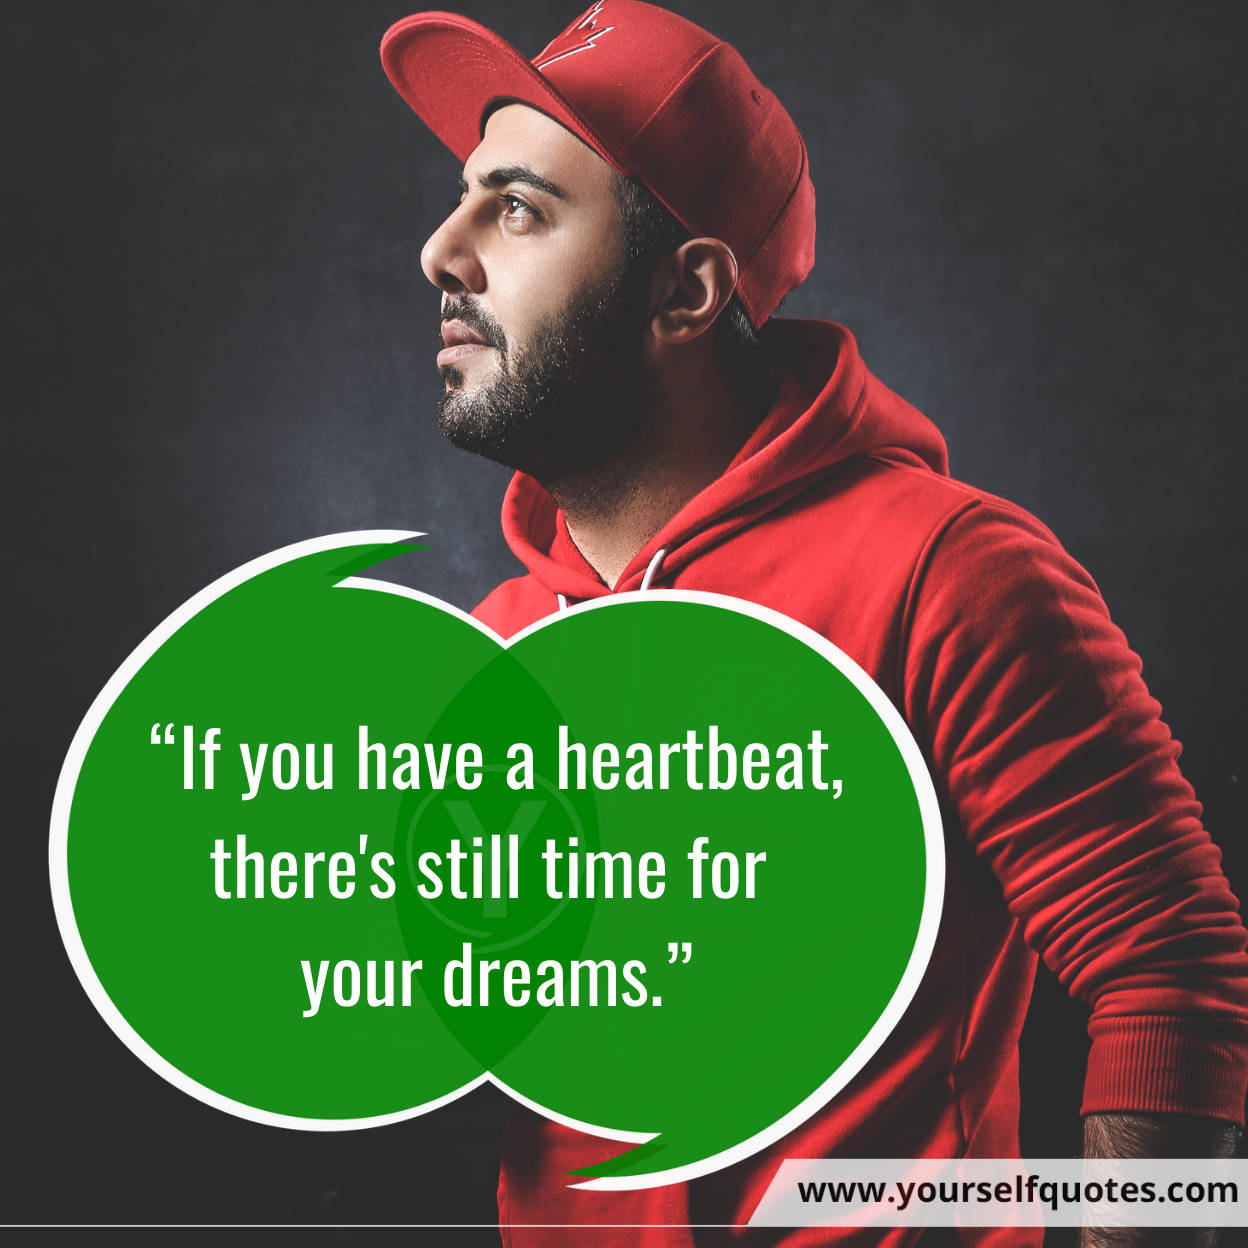 Quotes on Dream Images